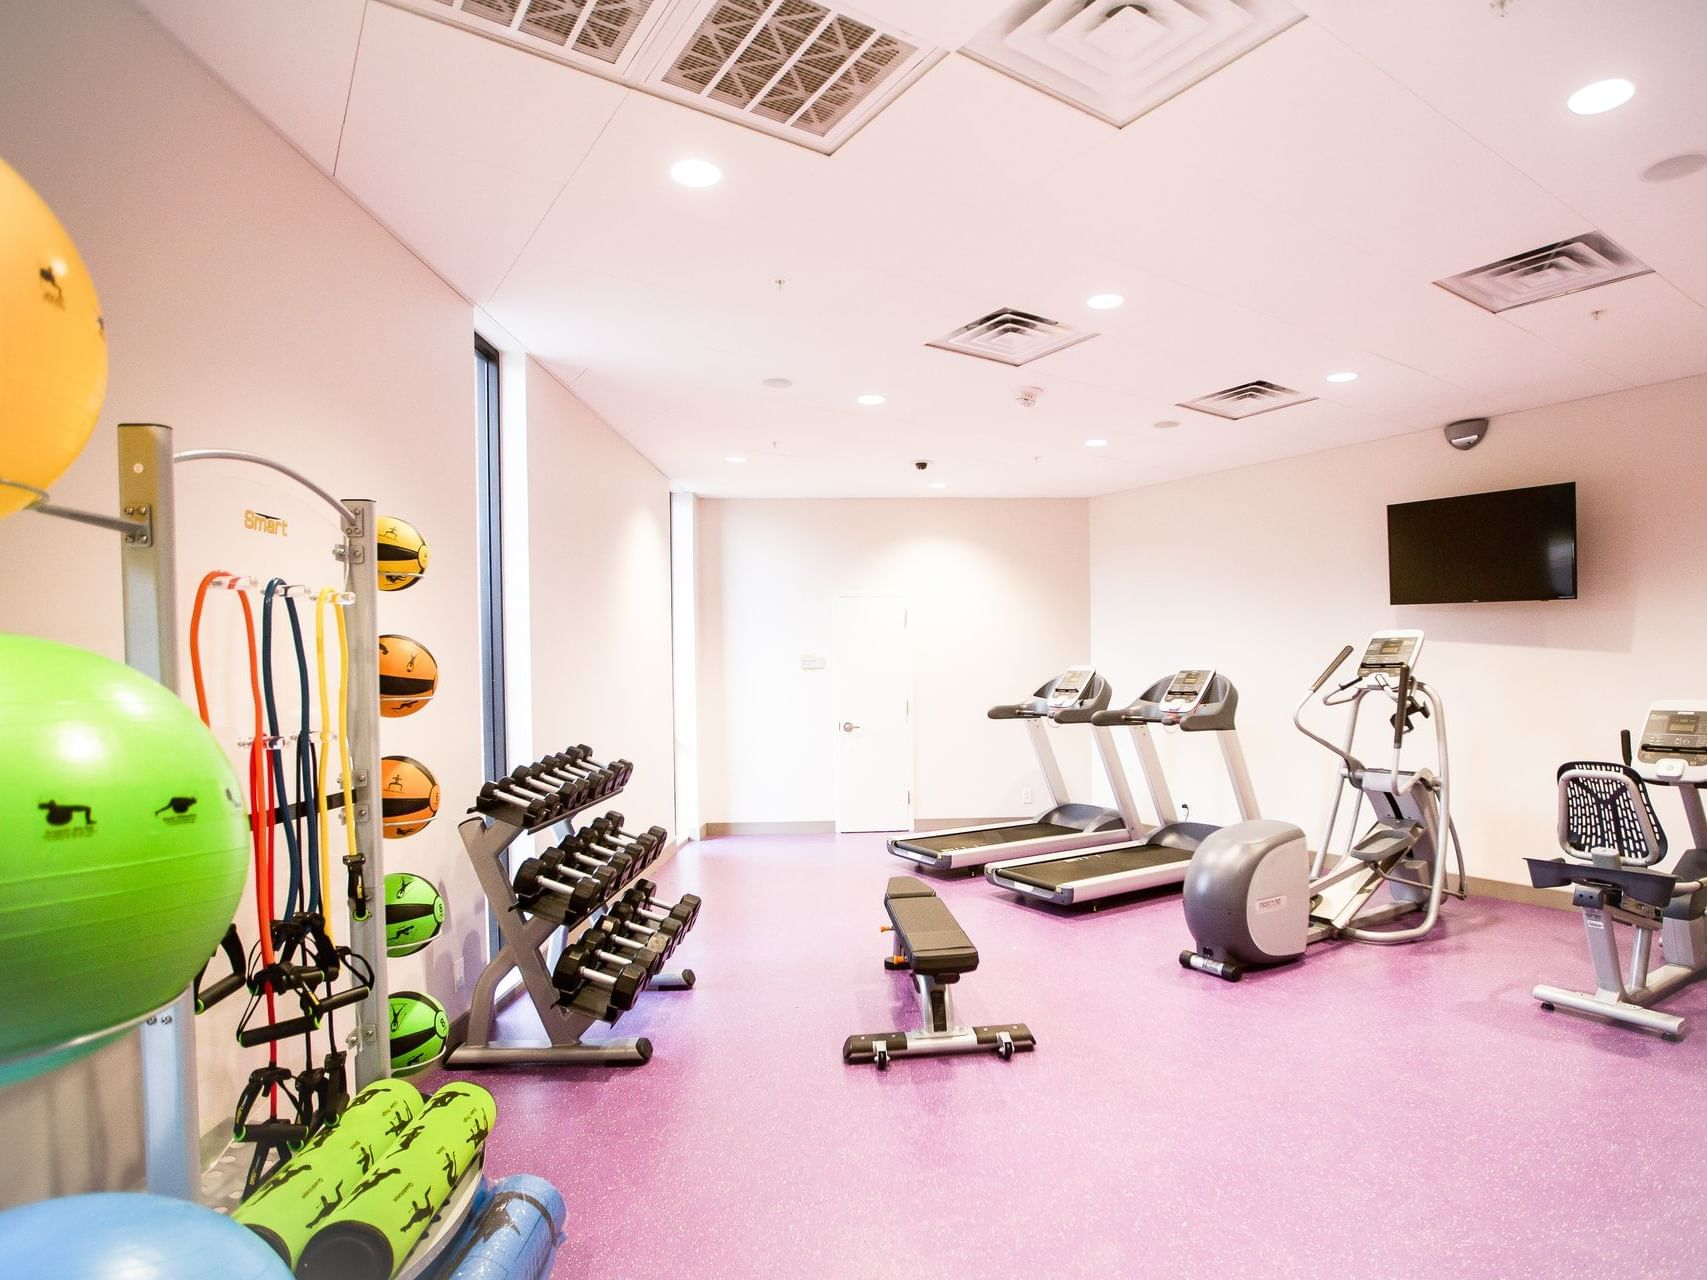 workout equipment in a hotel gym